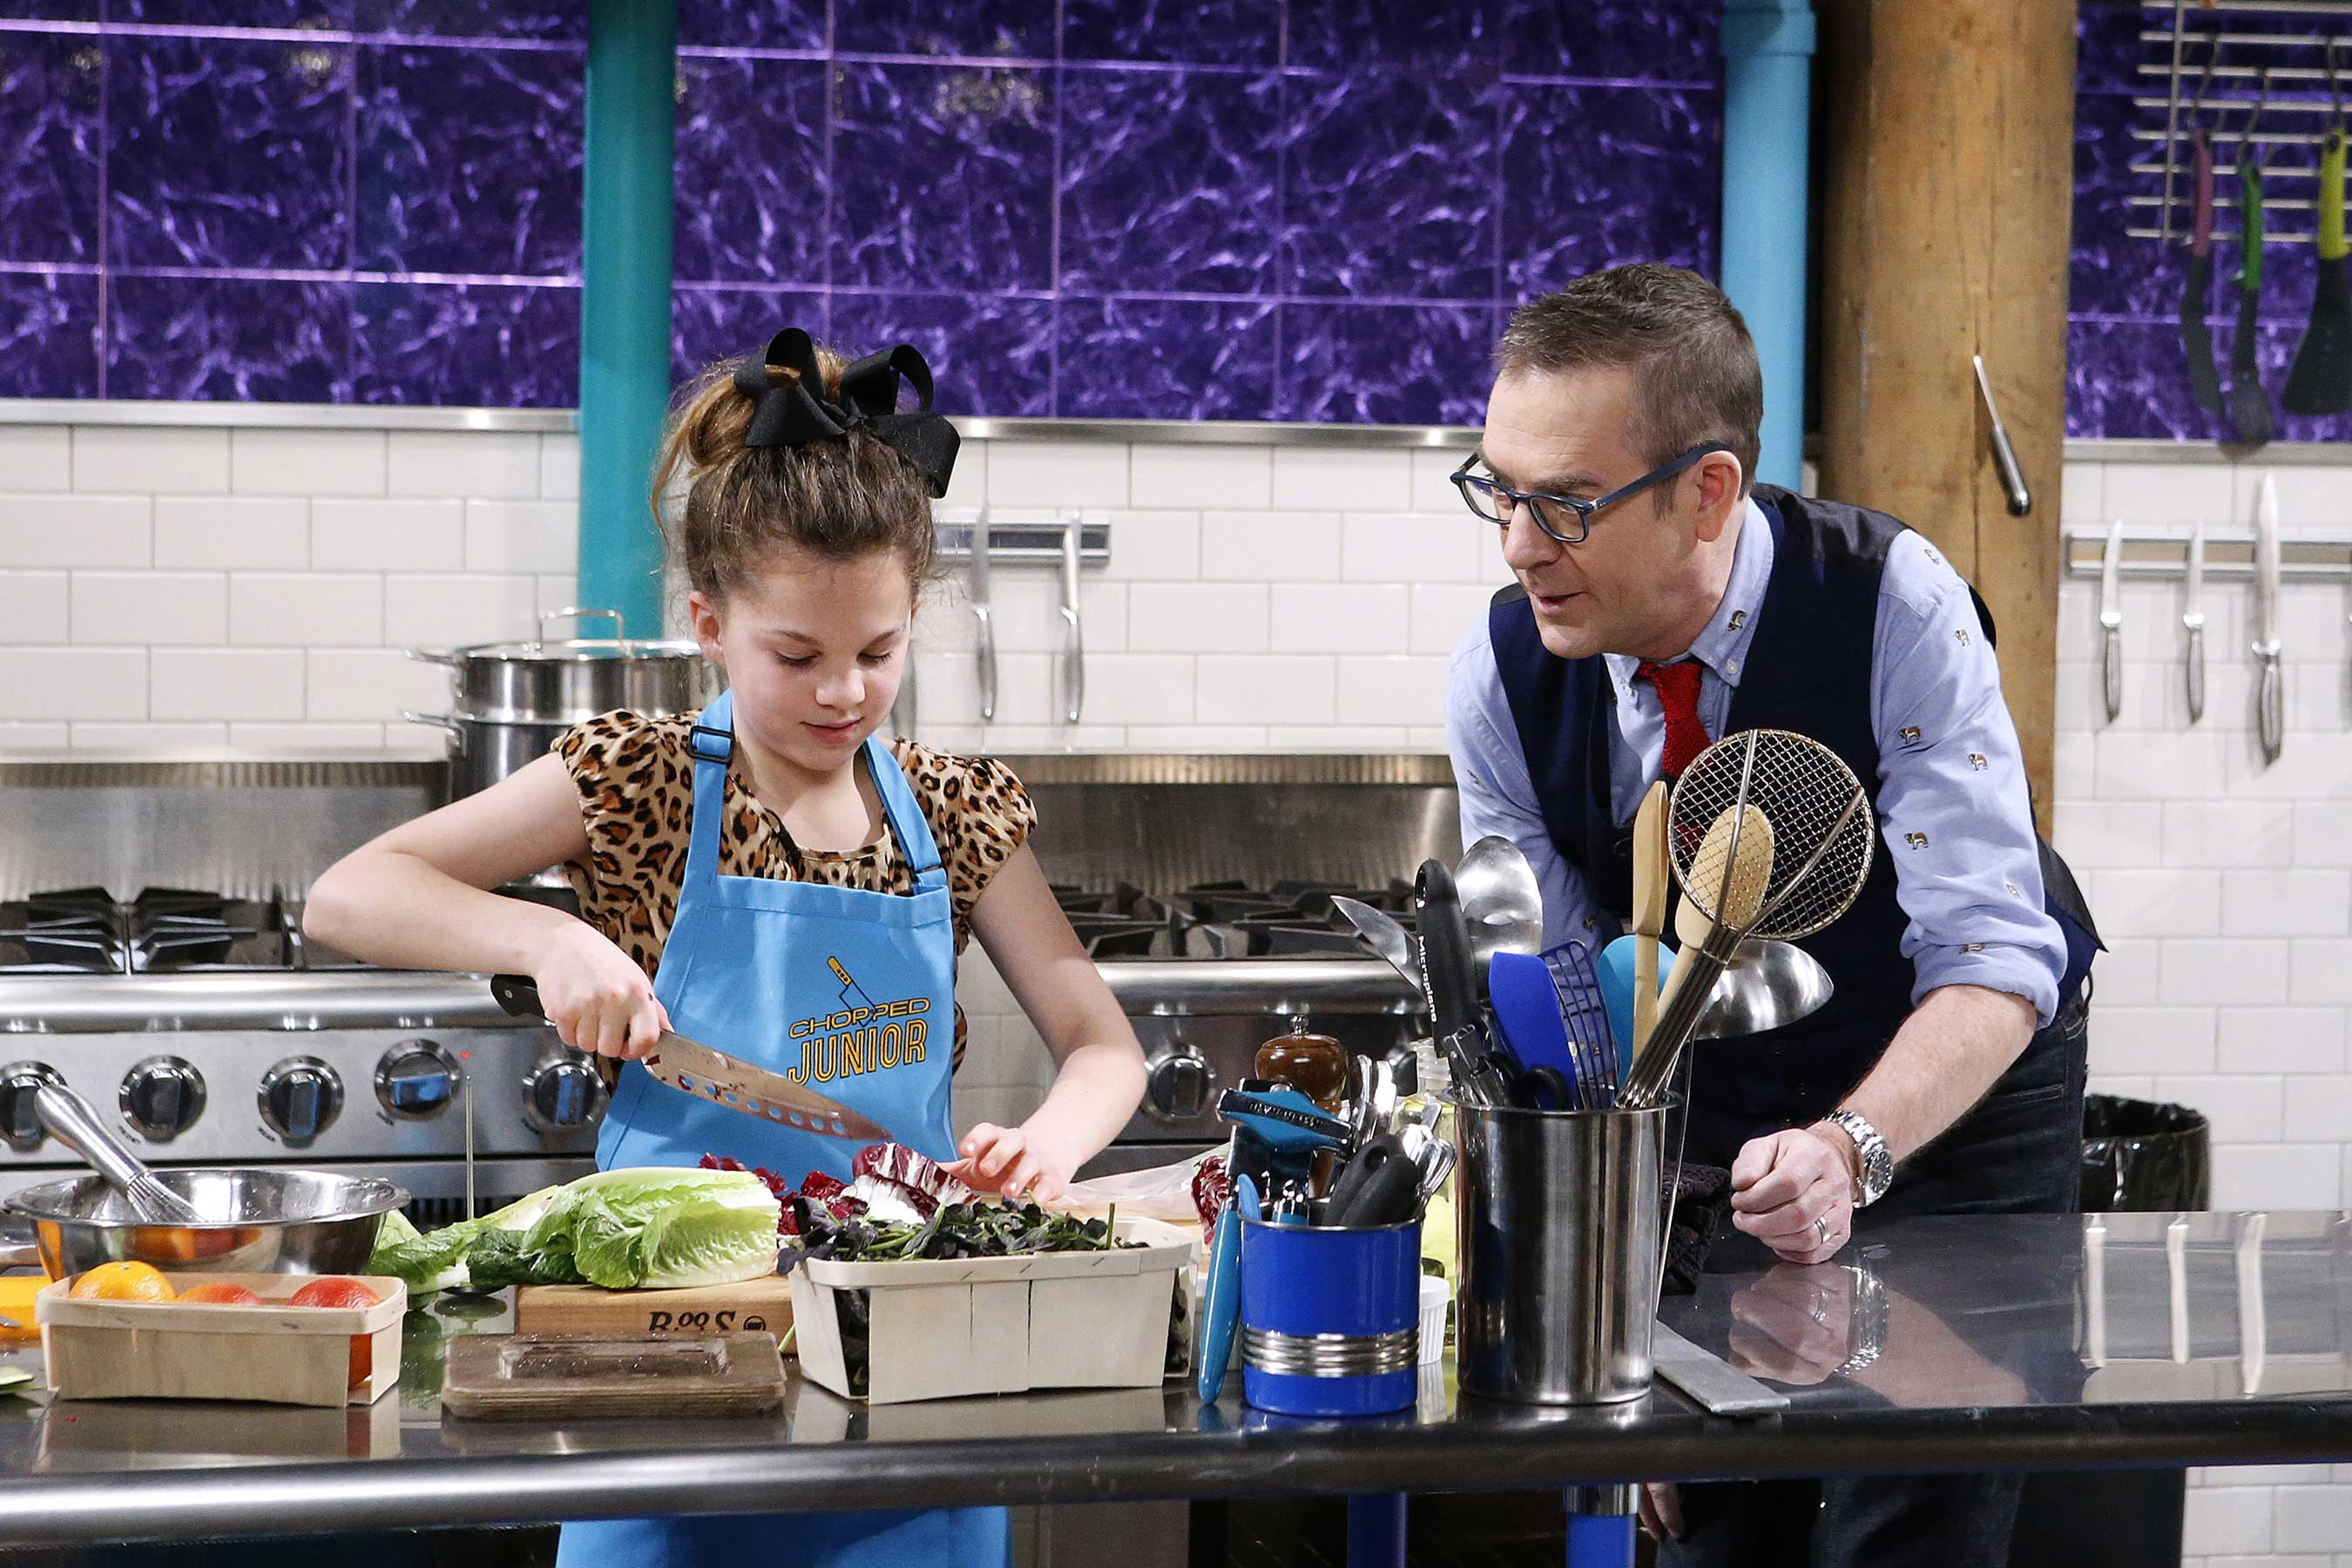 Chopped Food Network talented junior chefs showcase their skills on food network in new